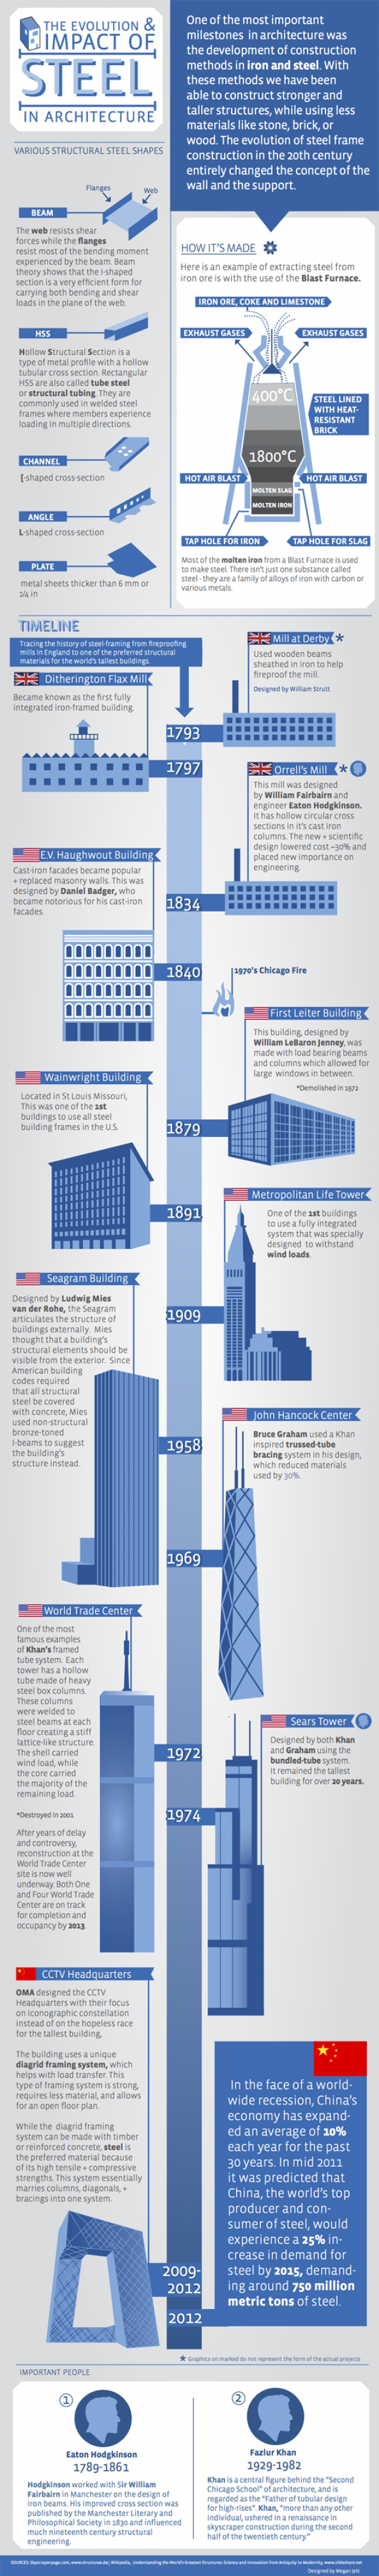 The evolution & impact of steel in Architecture Infographic